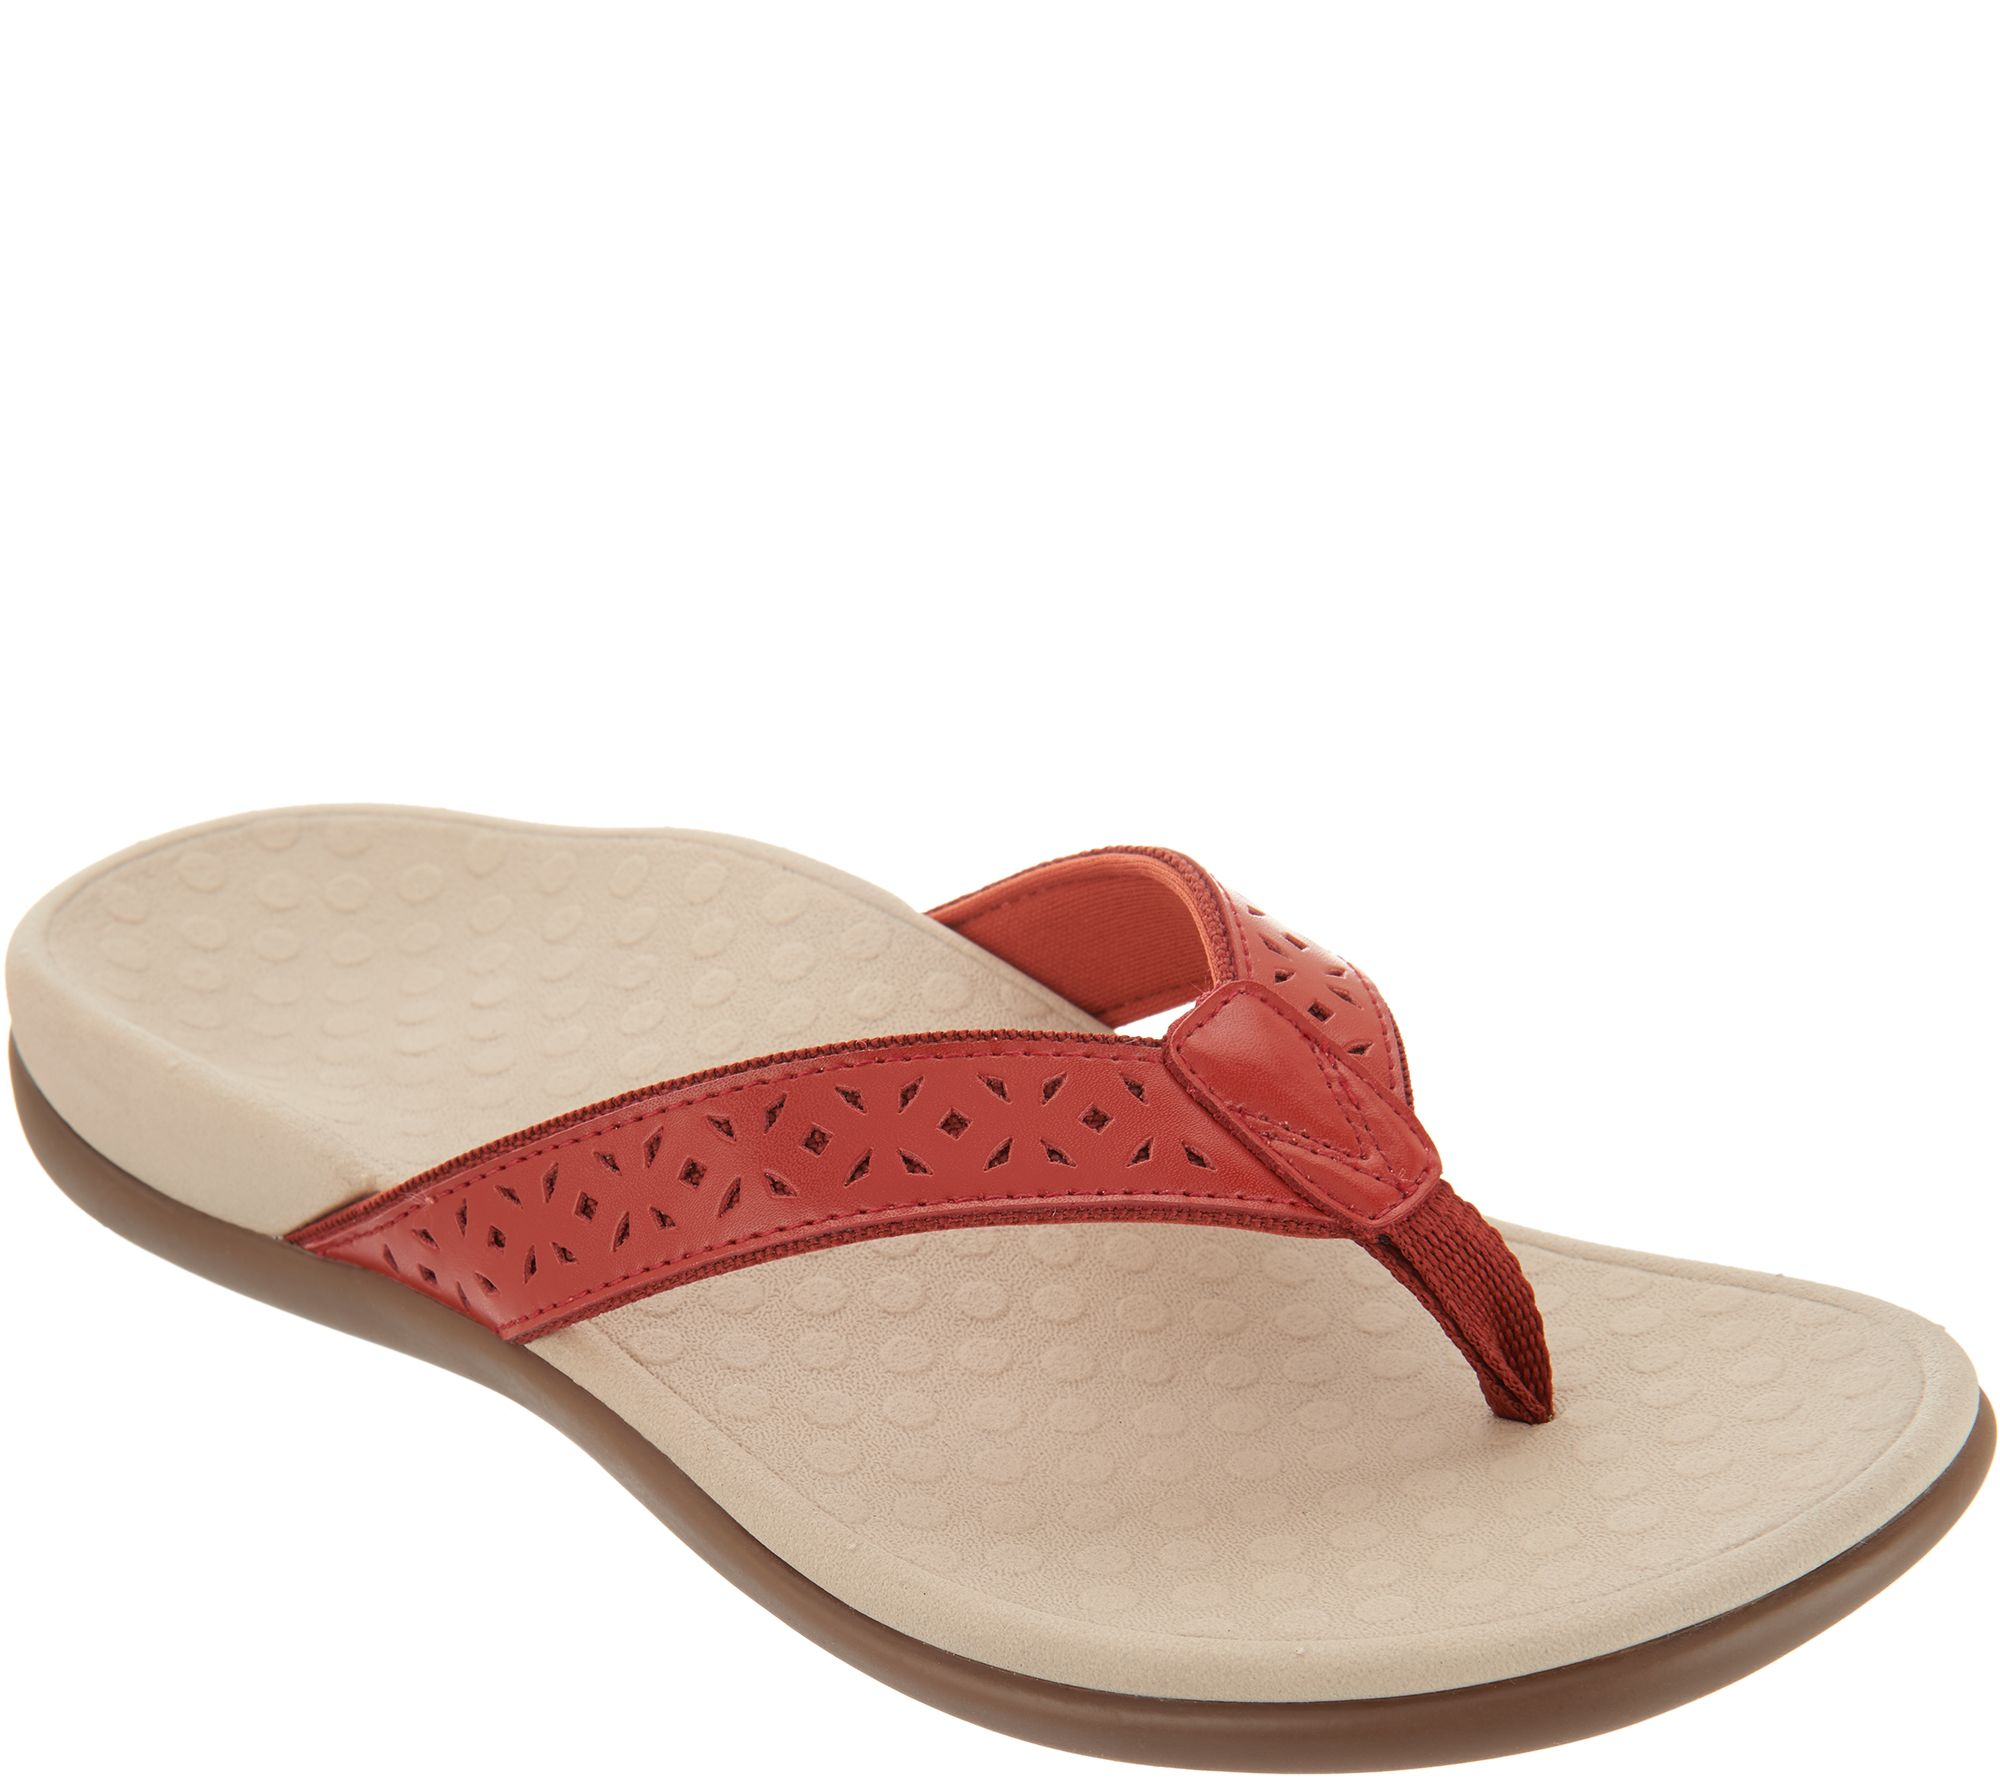 eaa6634b1 Vionic Leather Thong Sandals - Tide Anniversary - Page 1 — QVC.com